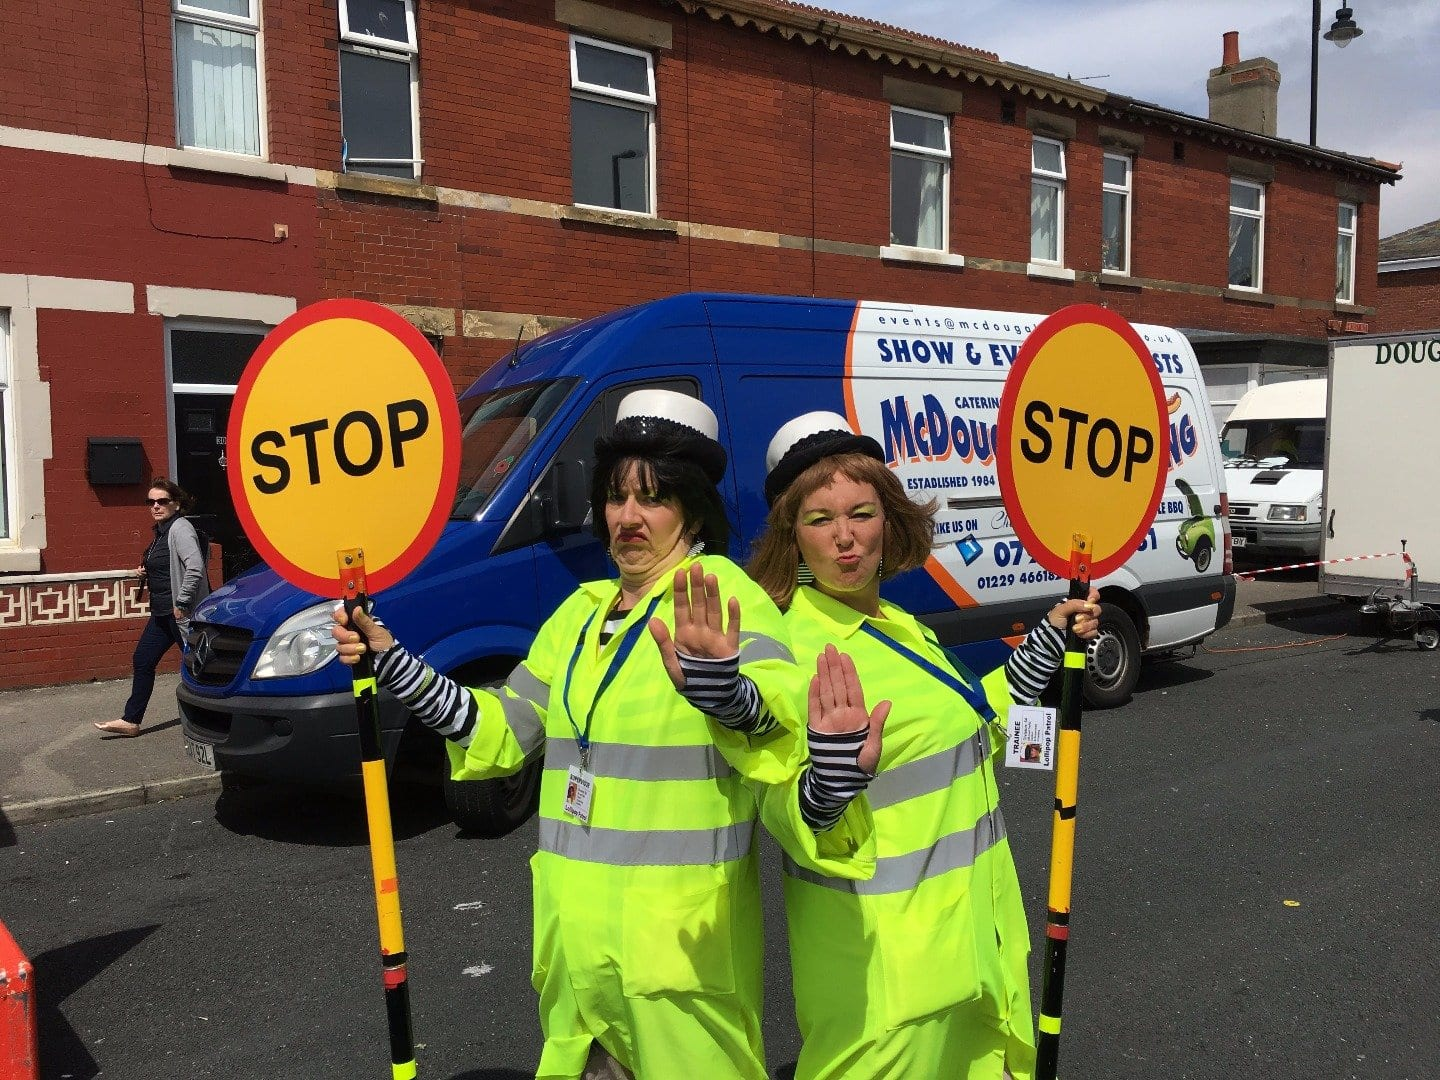 The Lollipop Patrol at Tram Sunday 2016